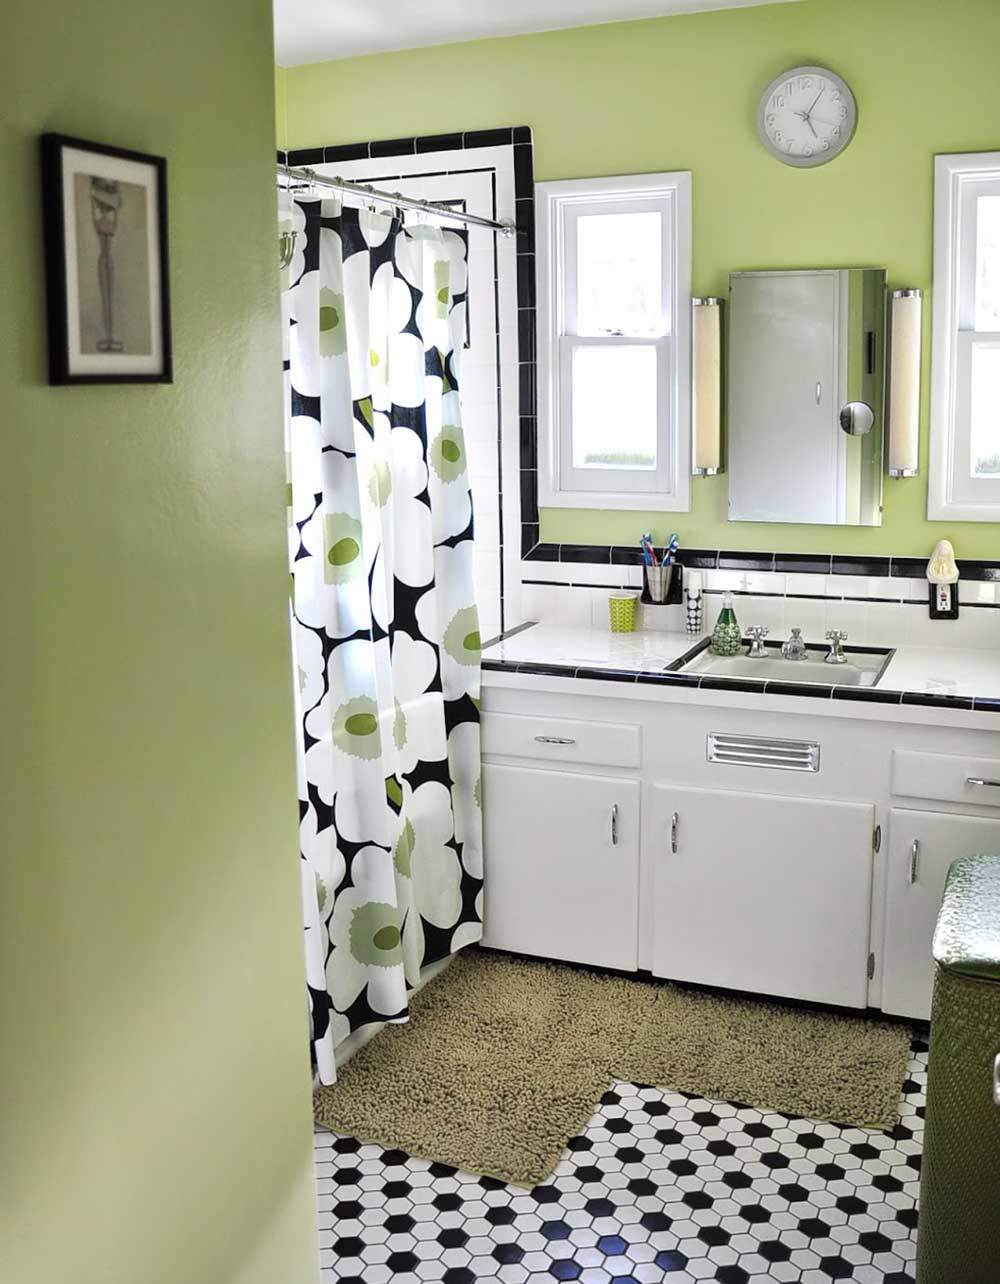 Merveilleux Vintage Black And White Tile Bathroom